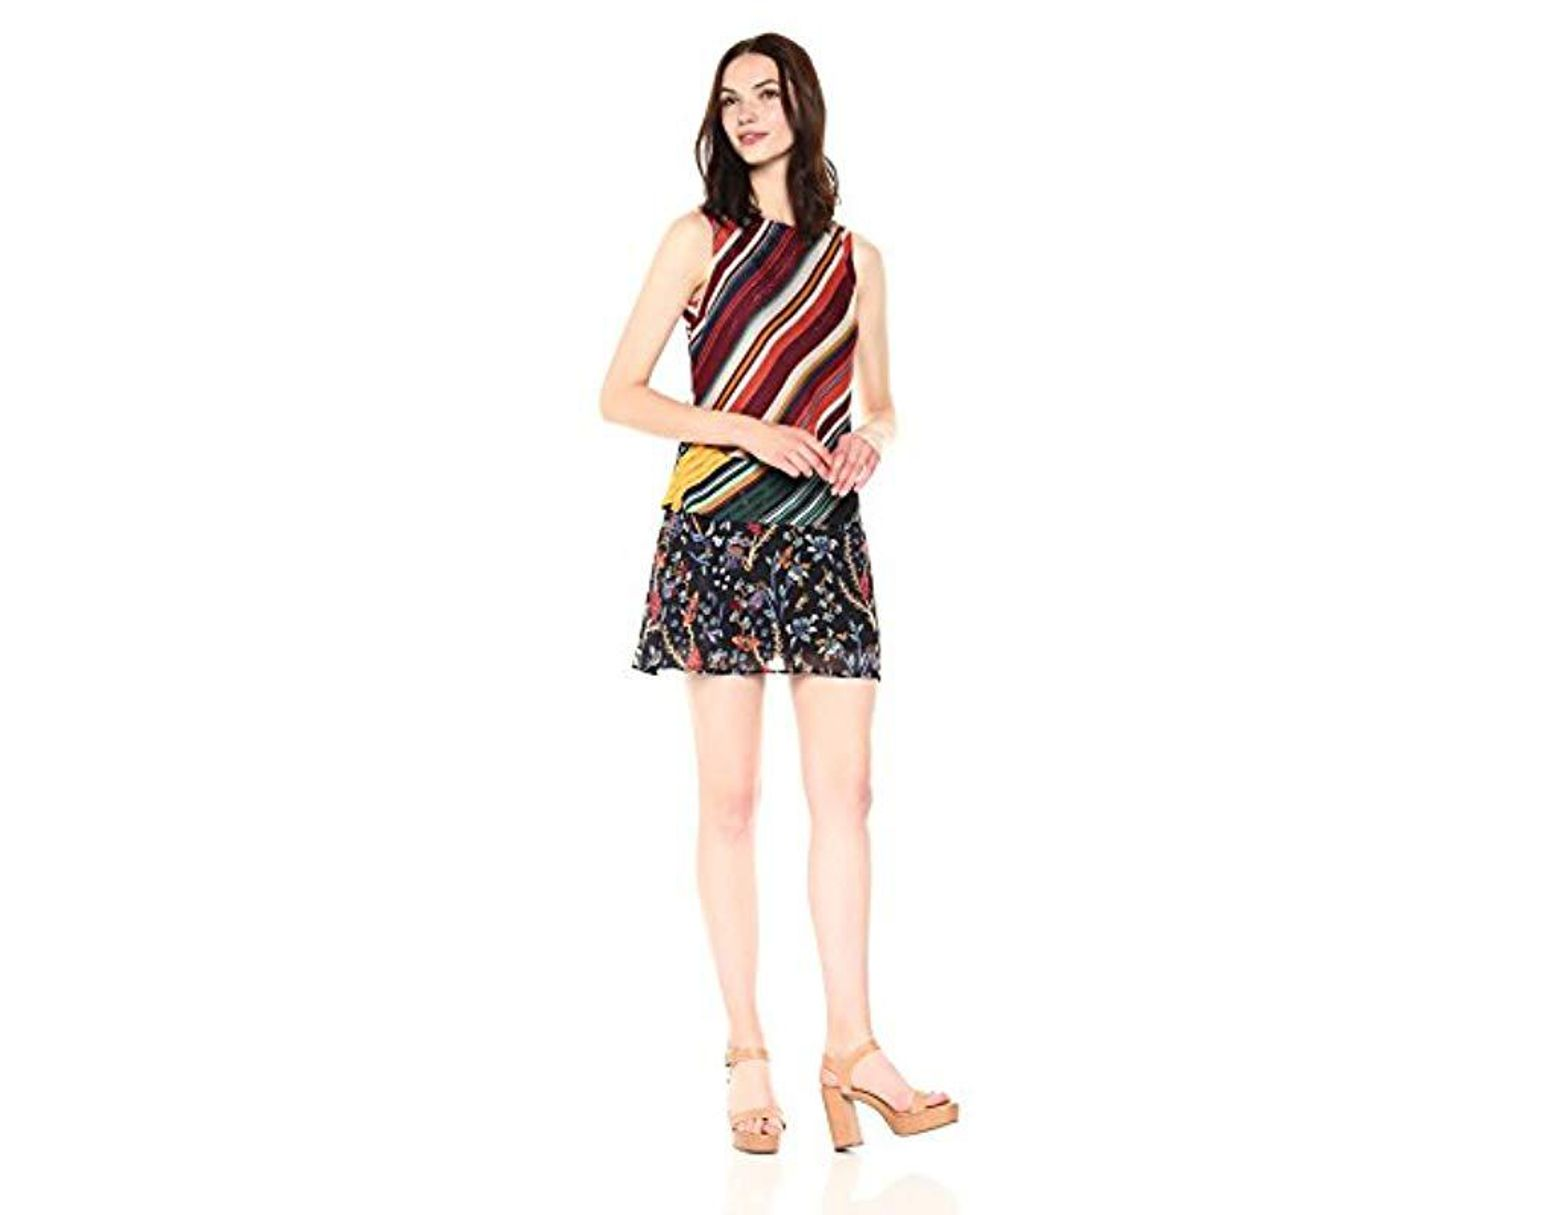 a996727748 Desigual Naticos Woman Woven Strapless Dress - Save 22% - Lyst